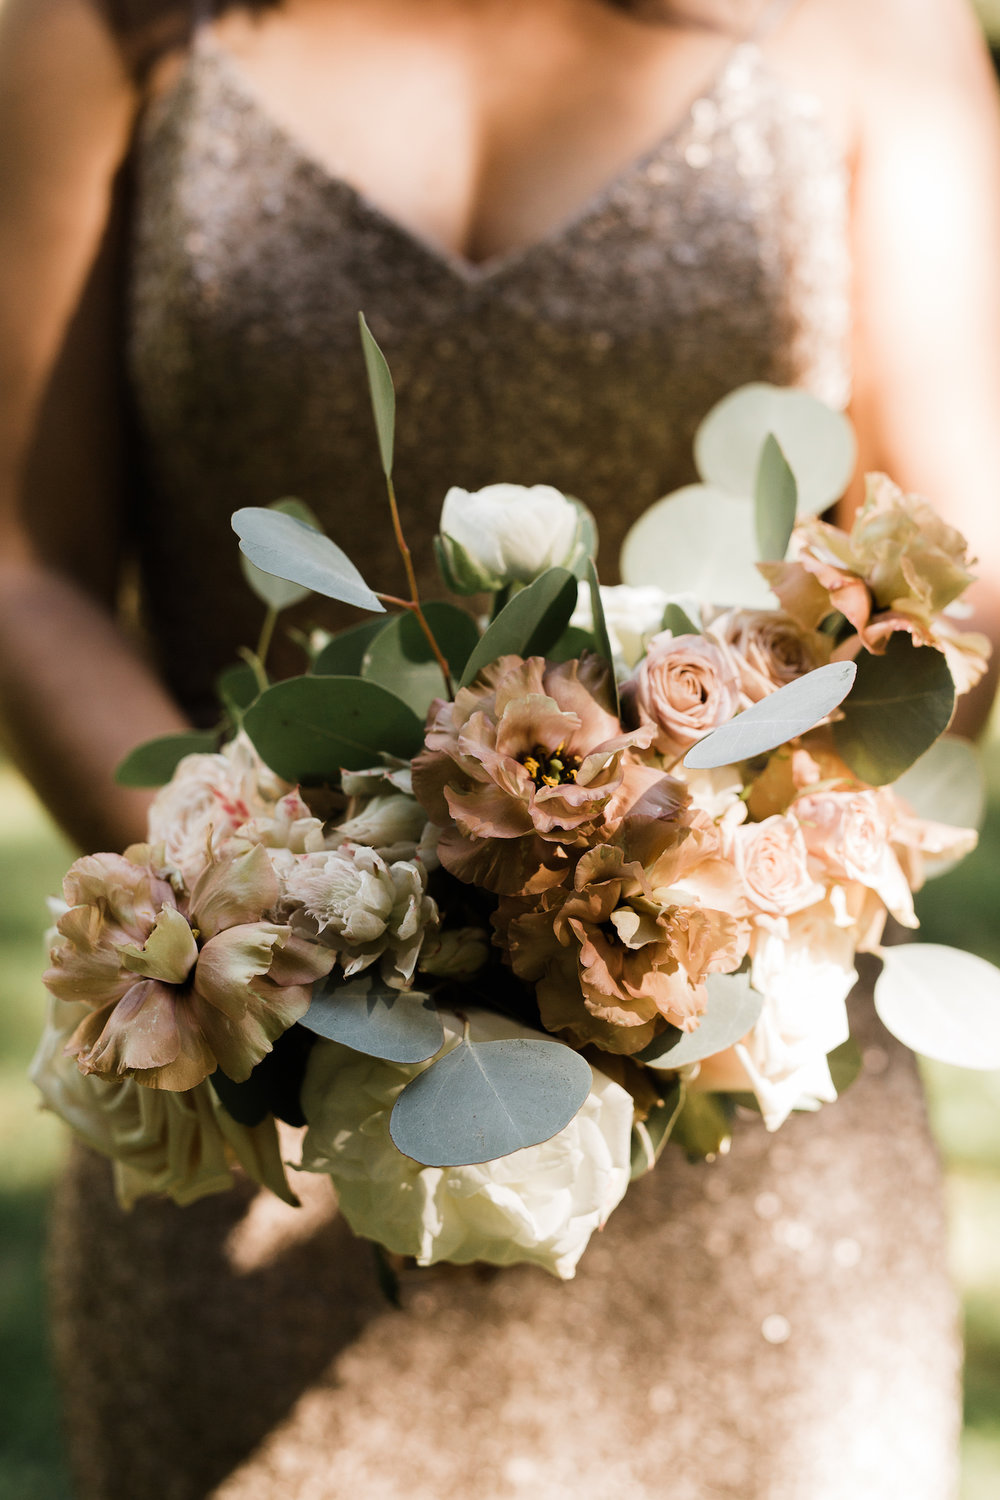 Wild Bloom Floral - Rachel Birkhofer Photography - Jessica and Phil - Real Wedding - Seattle 2.jpeg